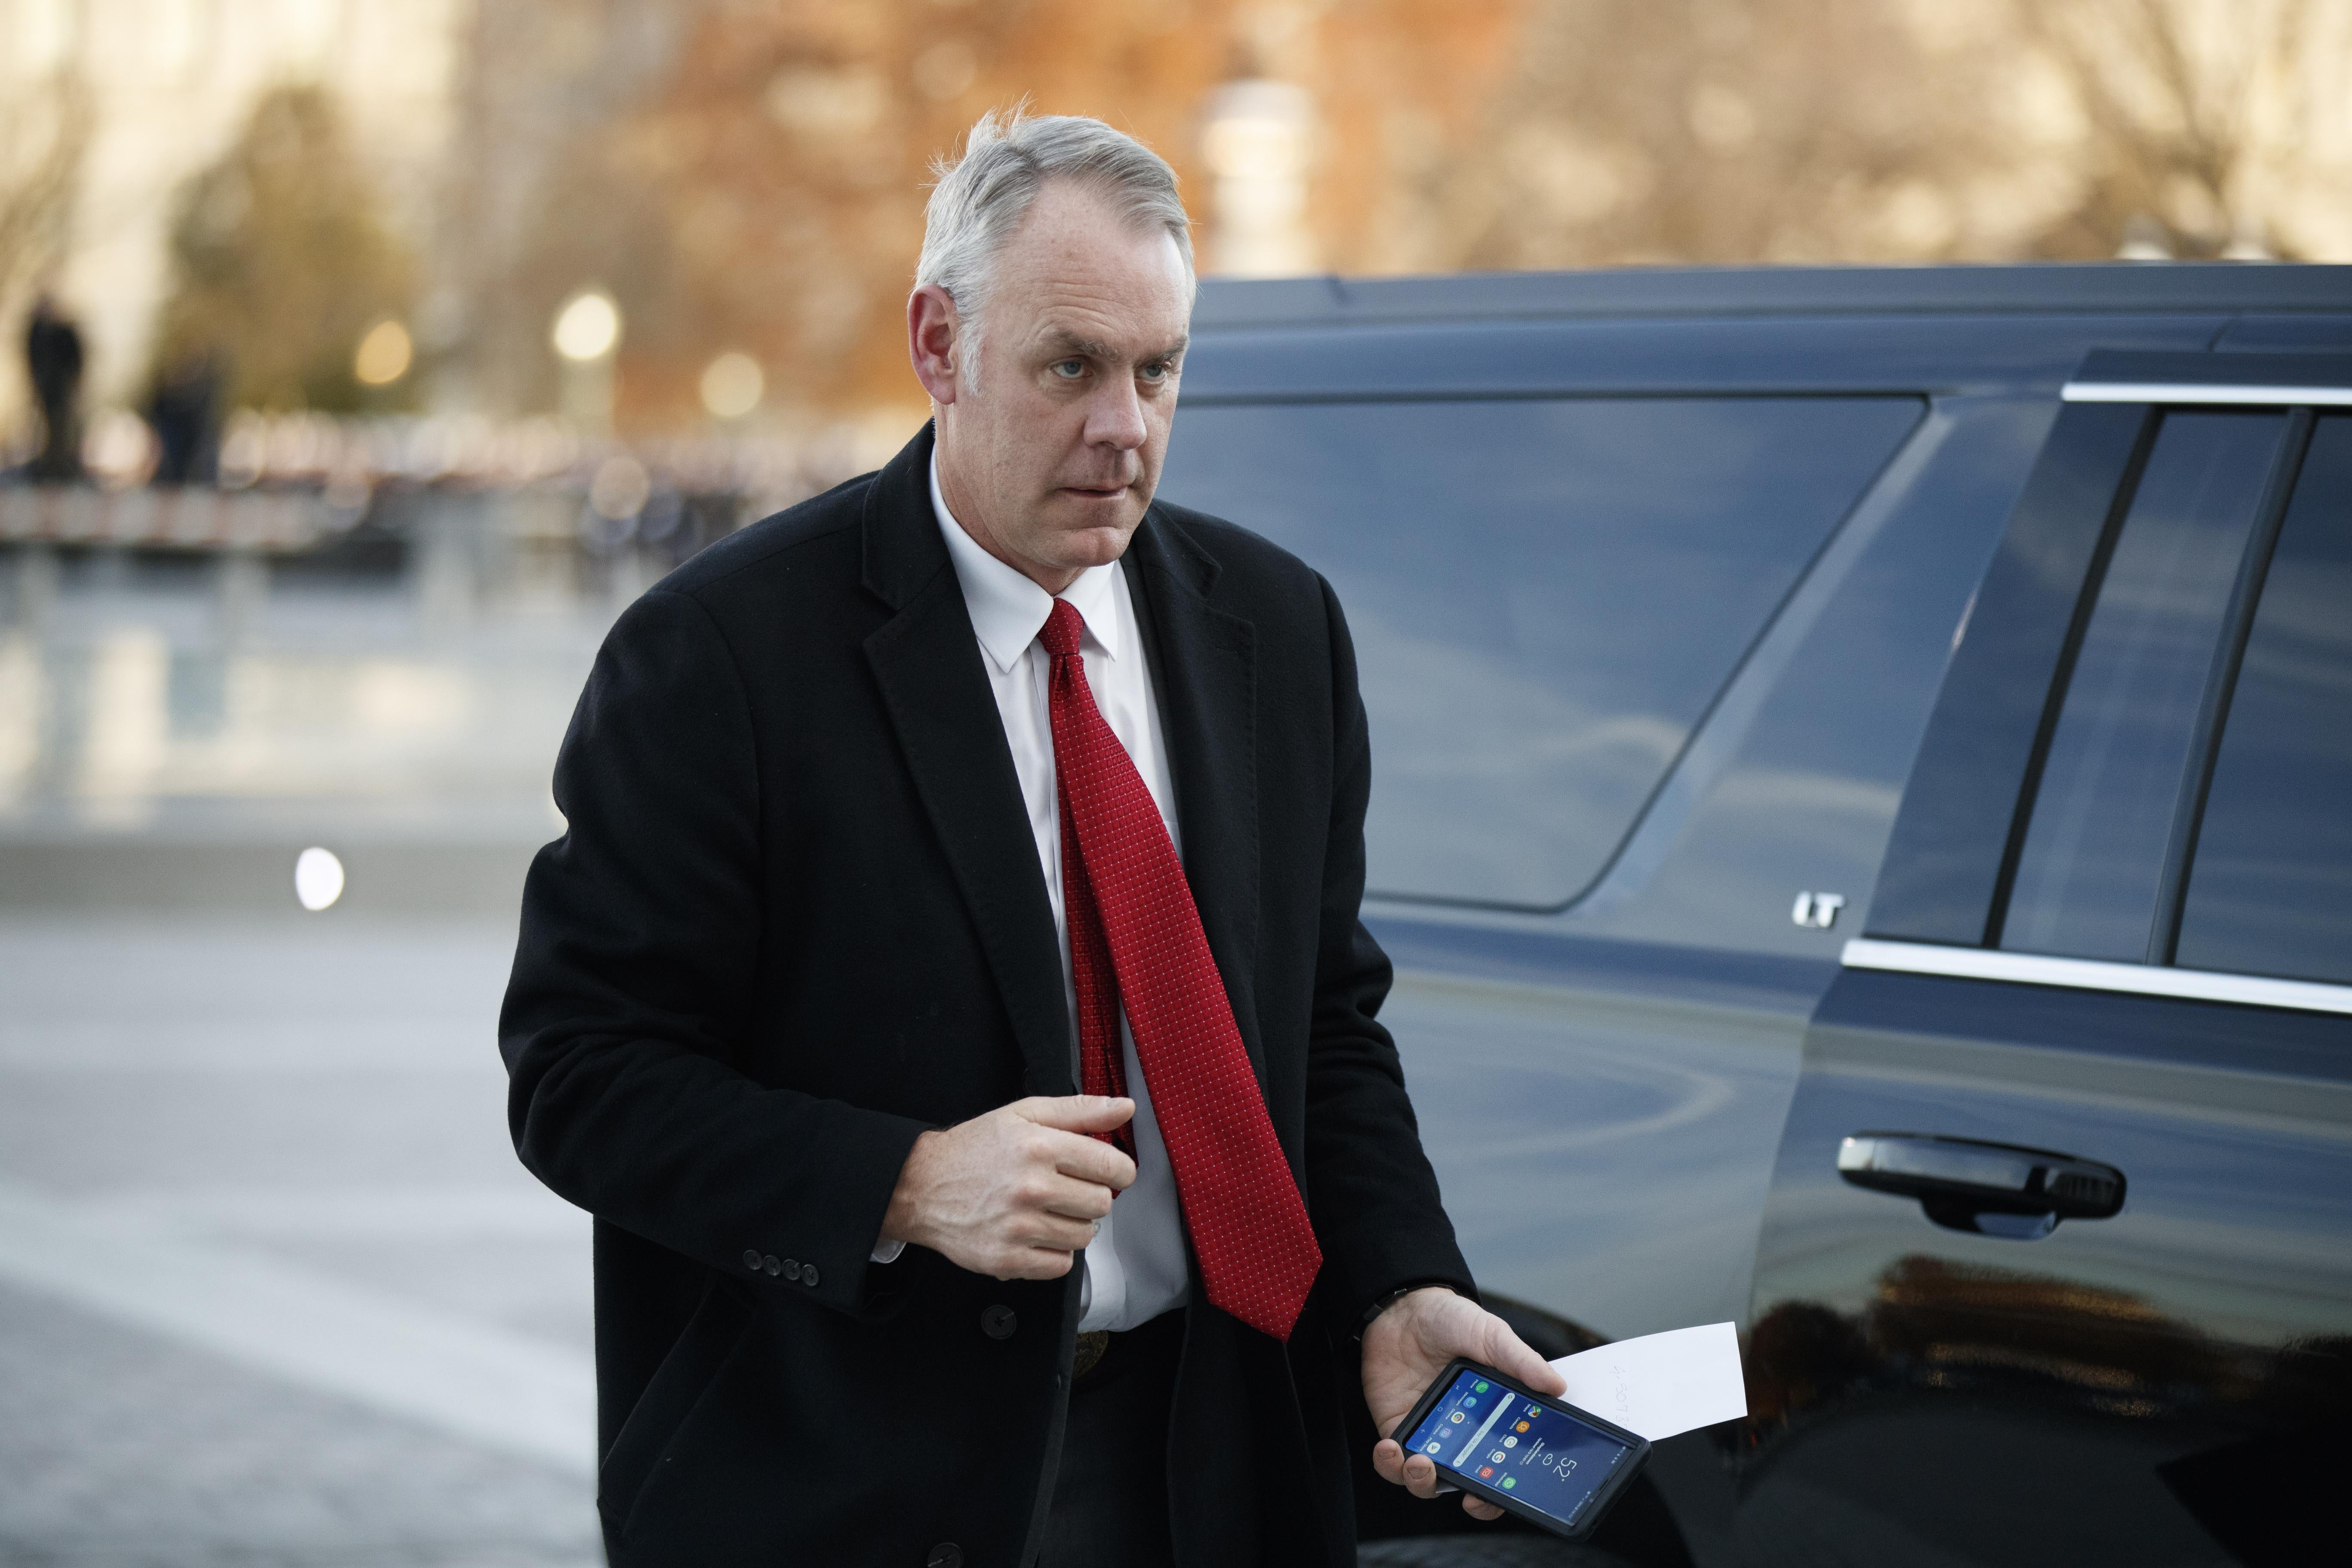 Ryan Zinke exits a car to arrive at the US Capitol on December 03, 2018.